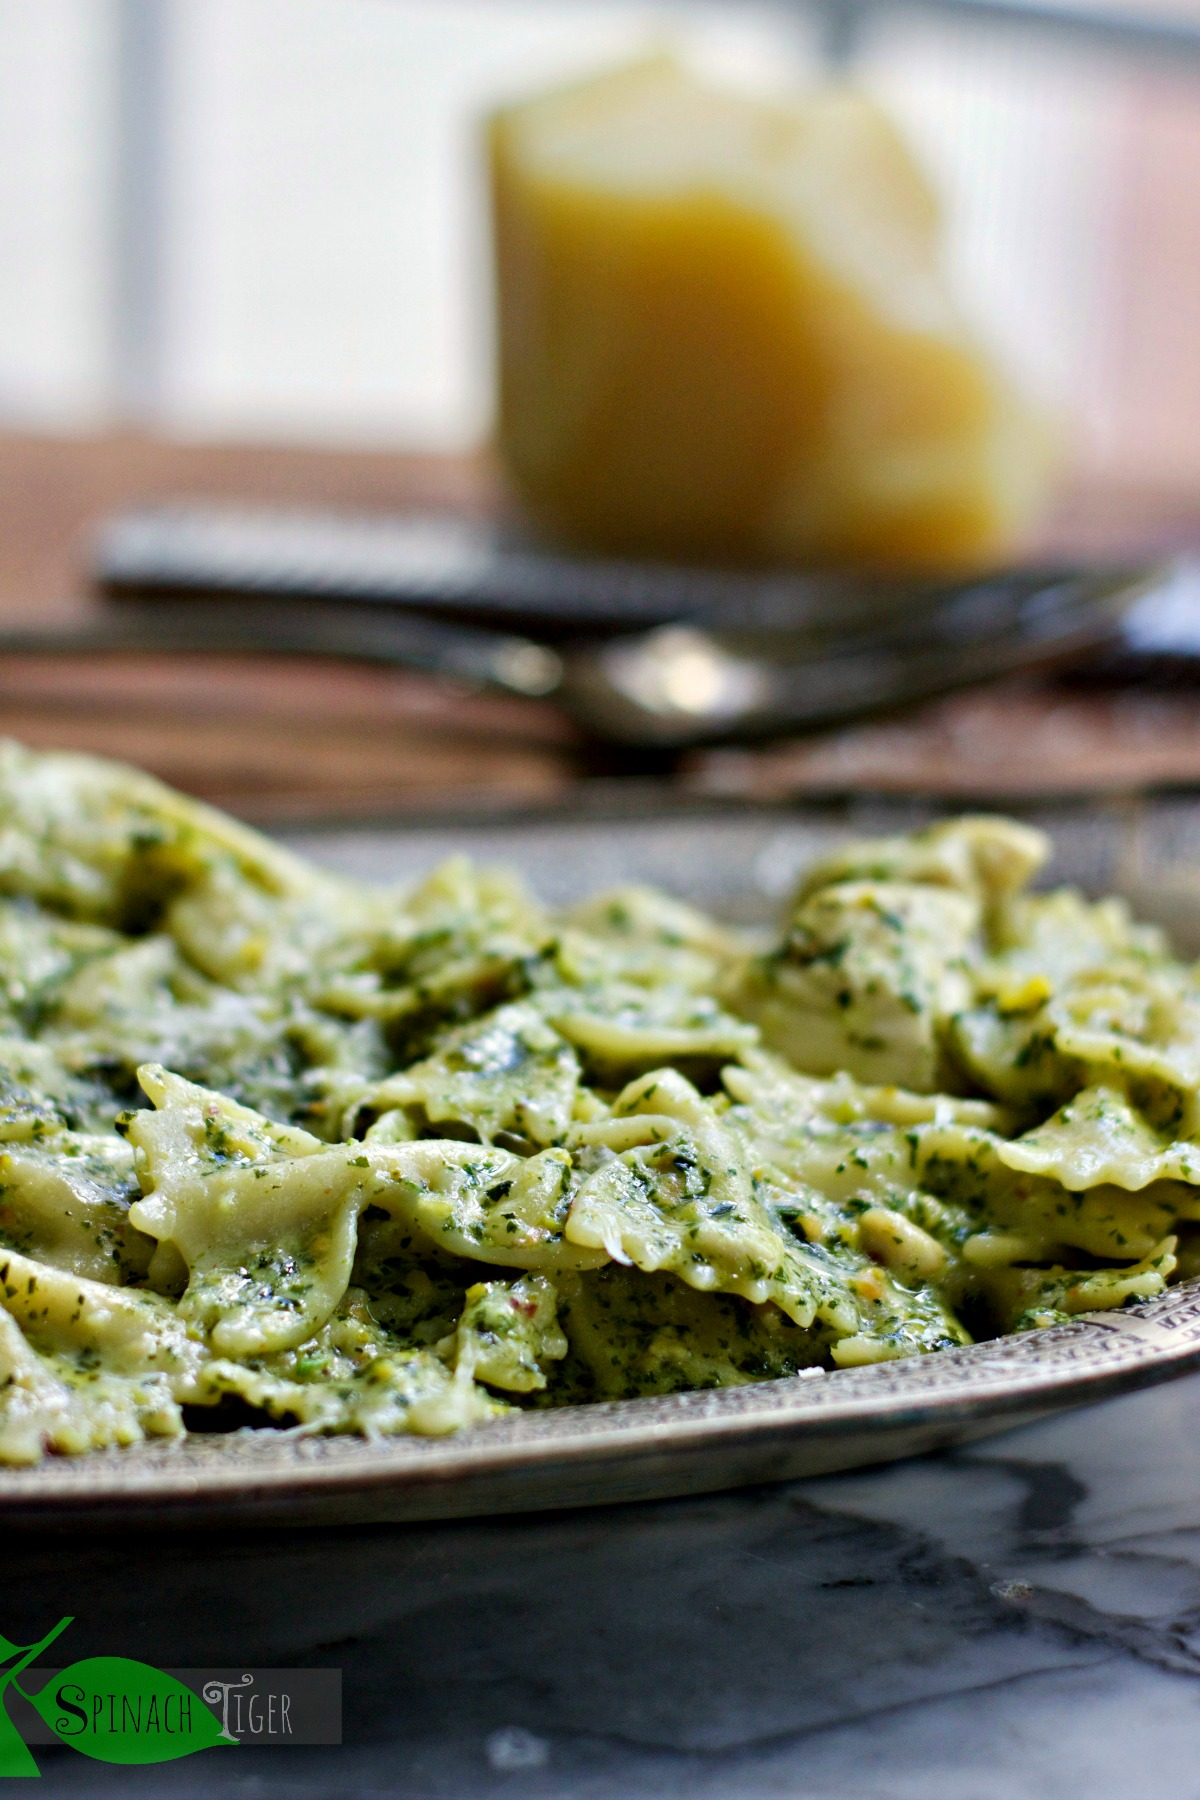 How to Make Italian Chicken Pasta Recipe with Pesto from Spinach Tiger